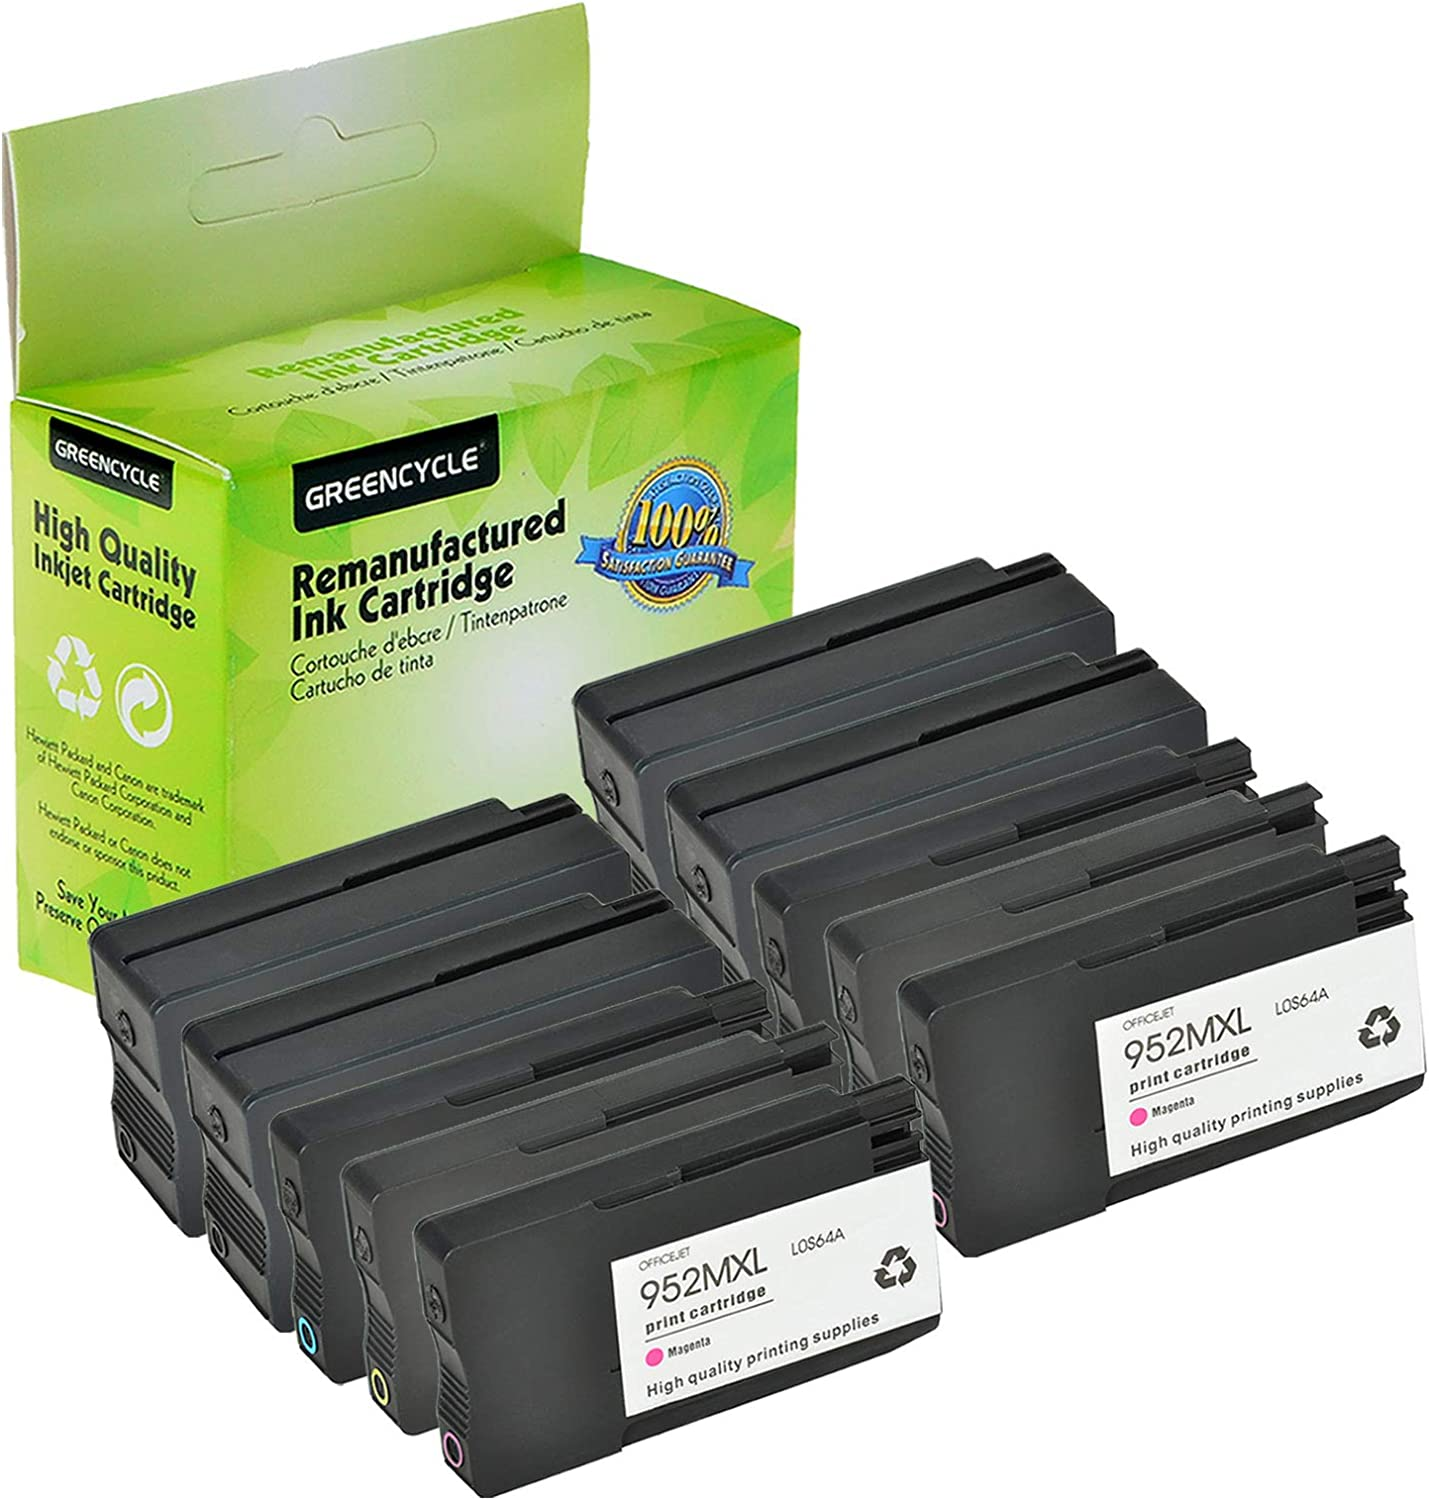 4 Black 2 Cyan 2 Magenta 2 Yellow GREENCYCLE High Yield Re-Manufactured 952XL 952 XL Ink Cartridge Compatible for HP OfficeJet Pro 8710 8720 8740 7740 8200 8210 8216 8700 8715 8728 8730 Printer